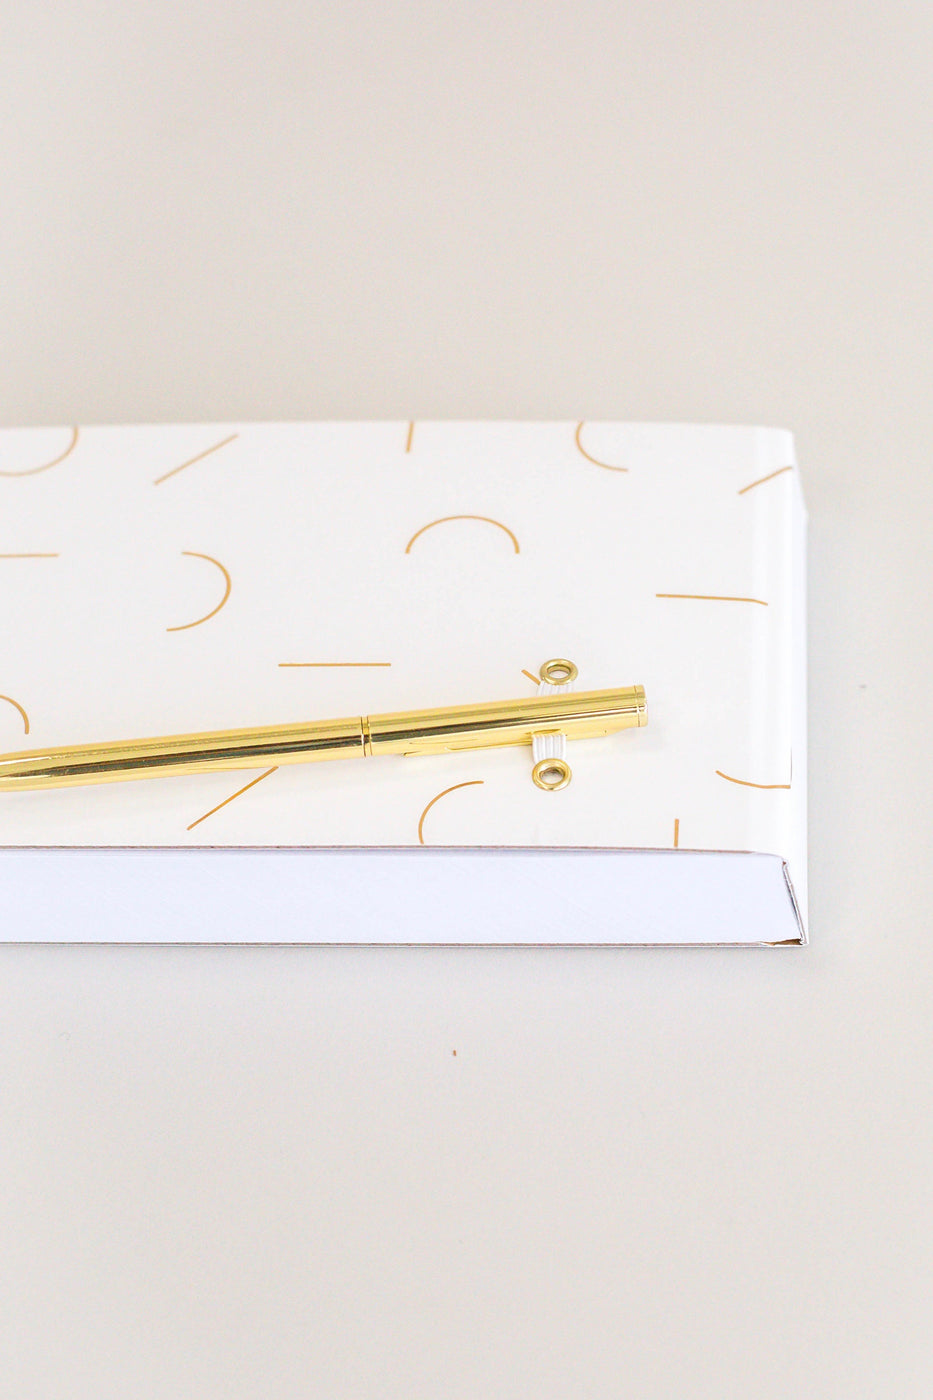 Cute Note Pad Stationary With Pen | ROOLEE